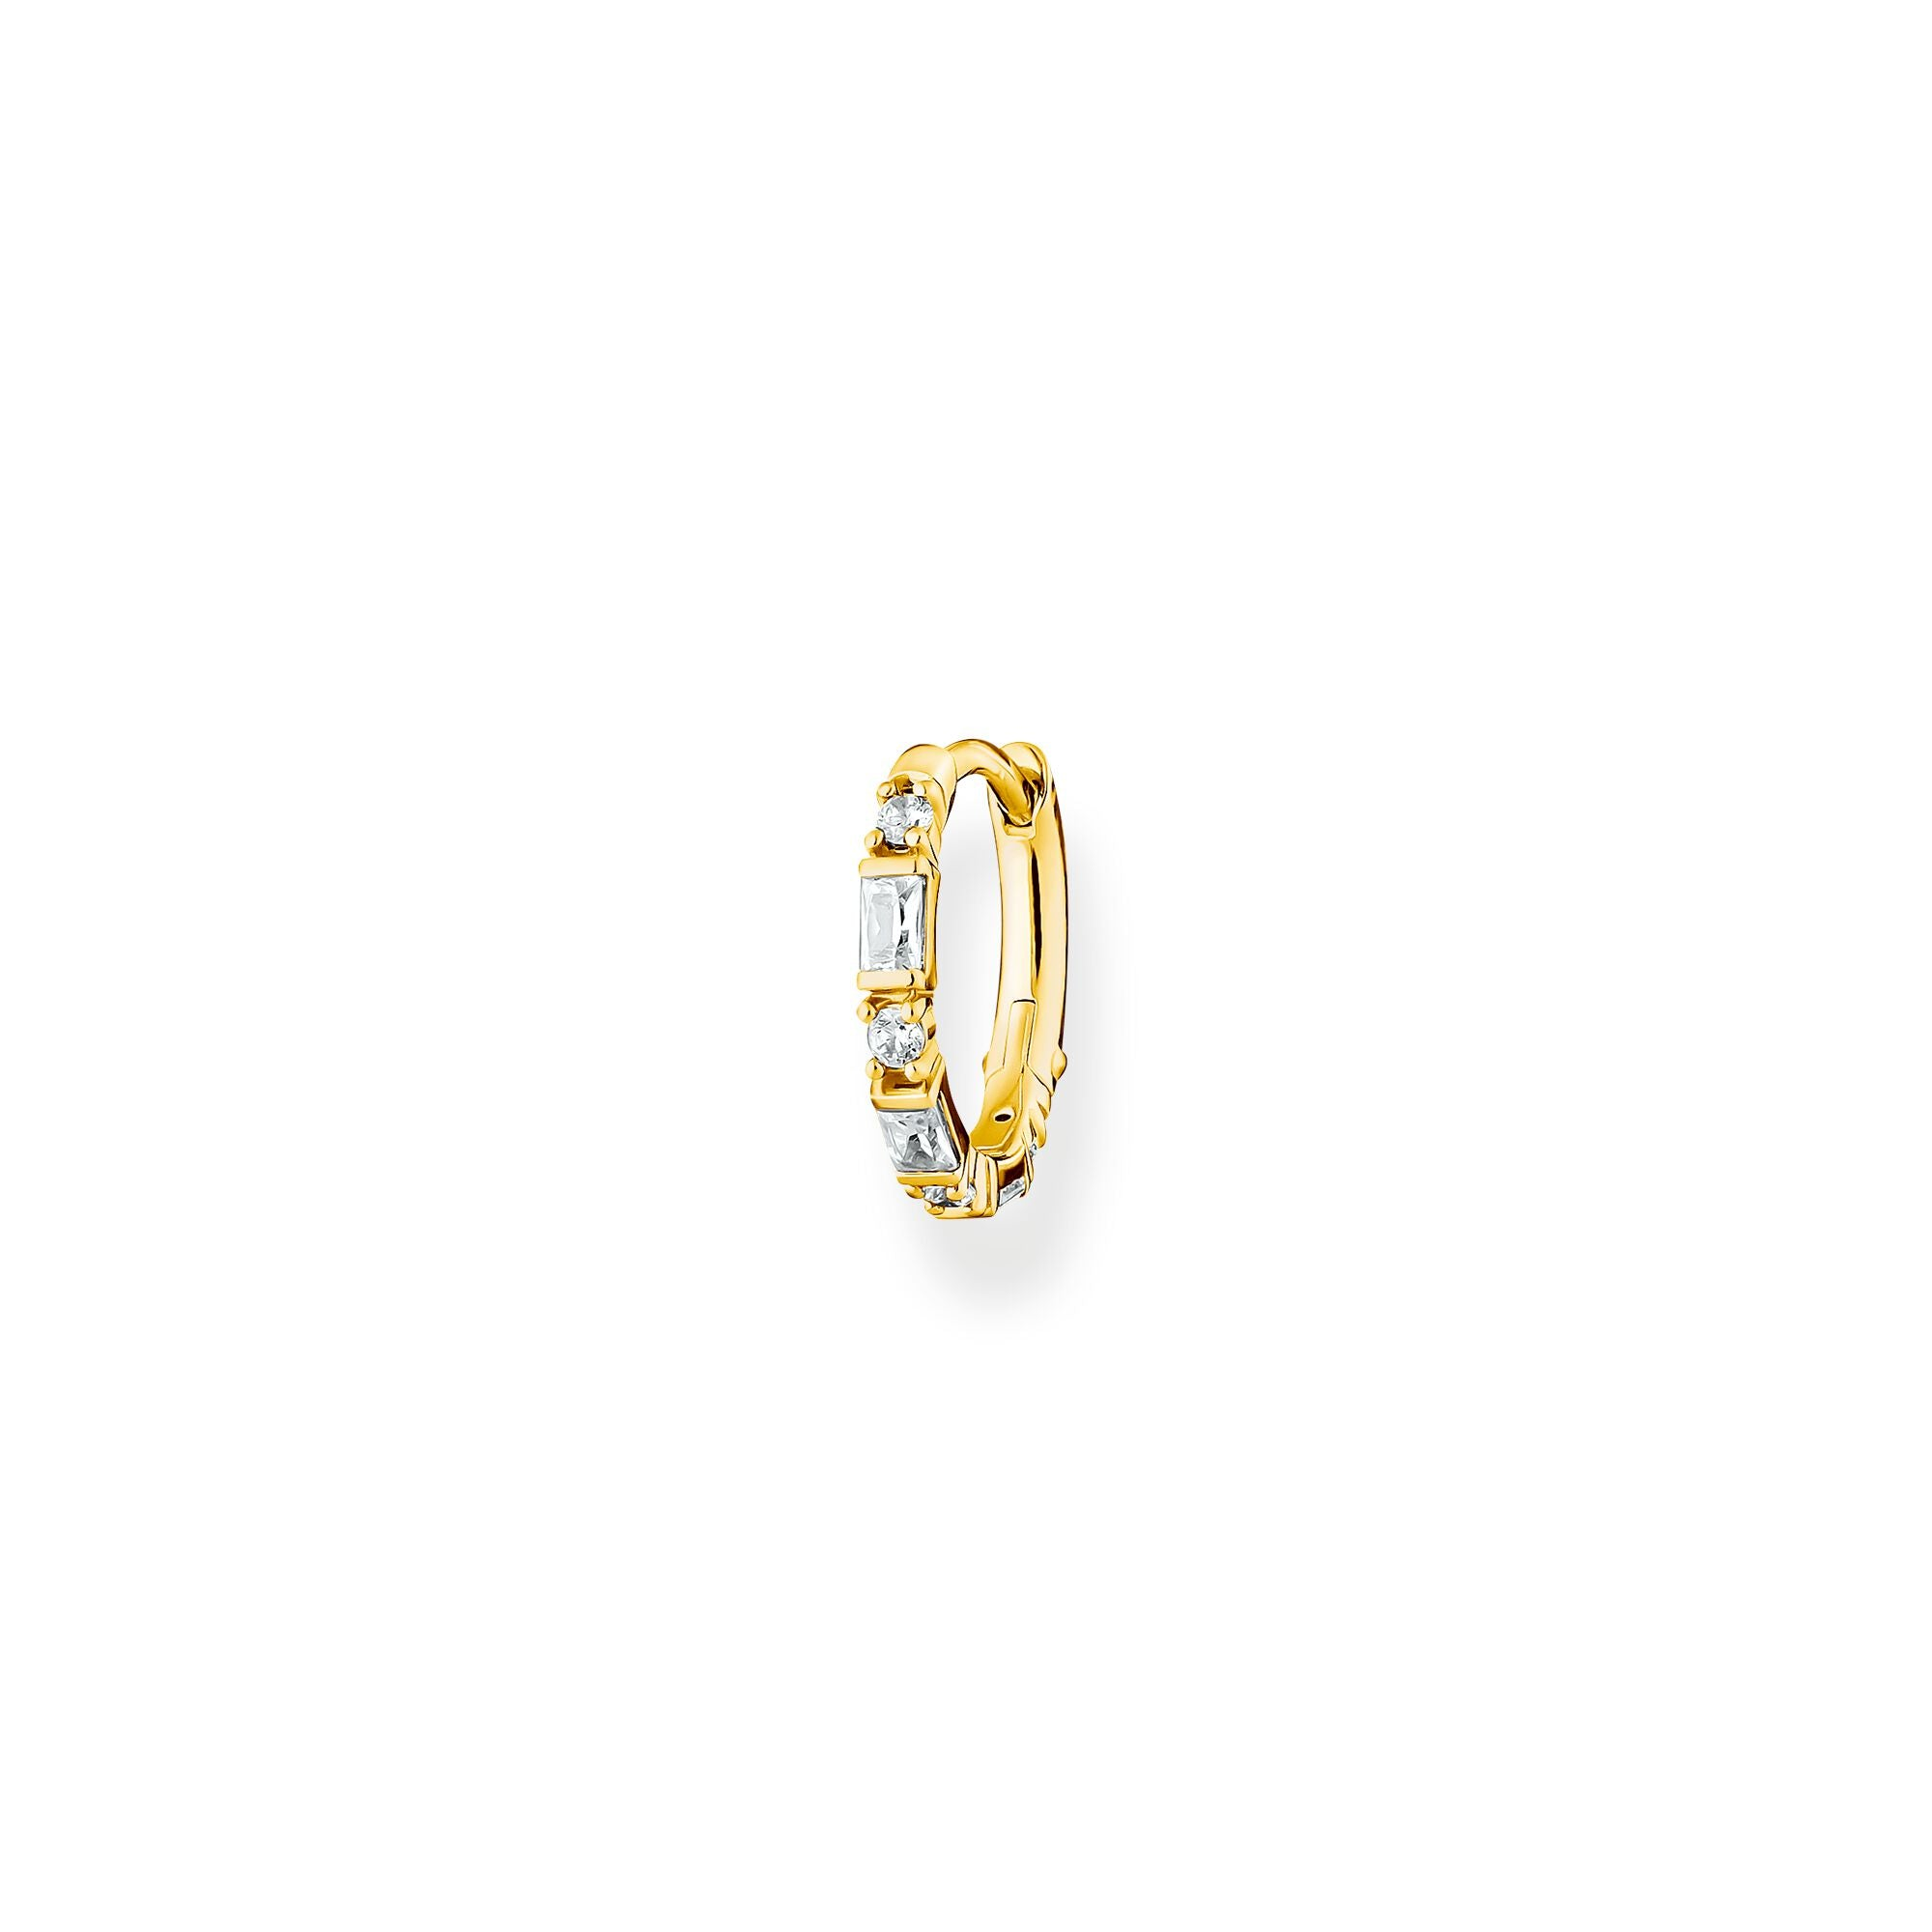 Thomas Sabo 18k yellow gold plated sterling silver and white baguette stones, clicker style single hoop earring